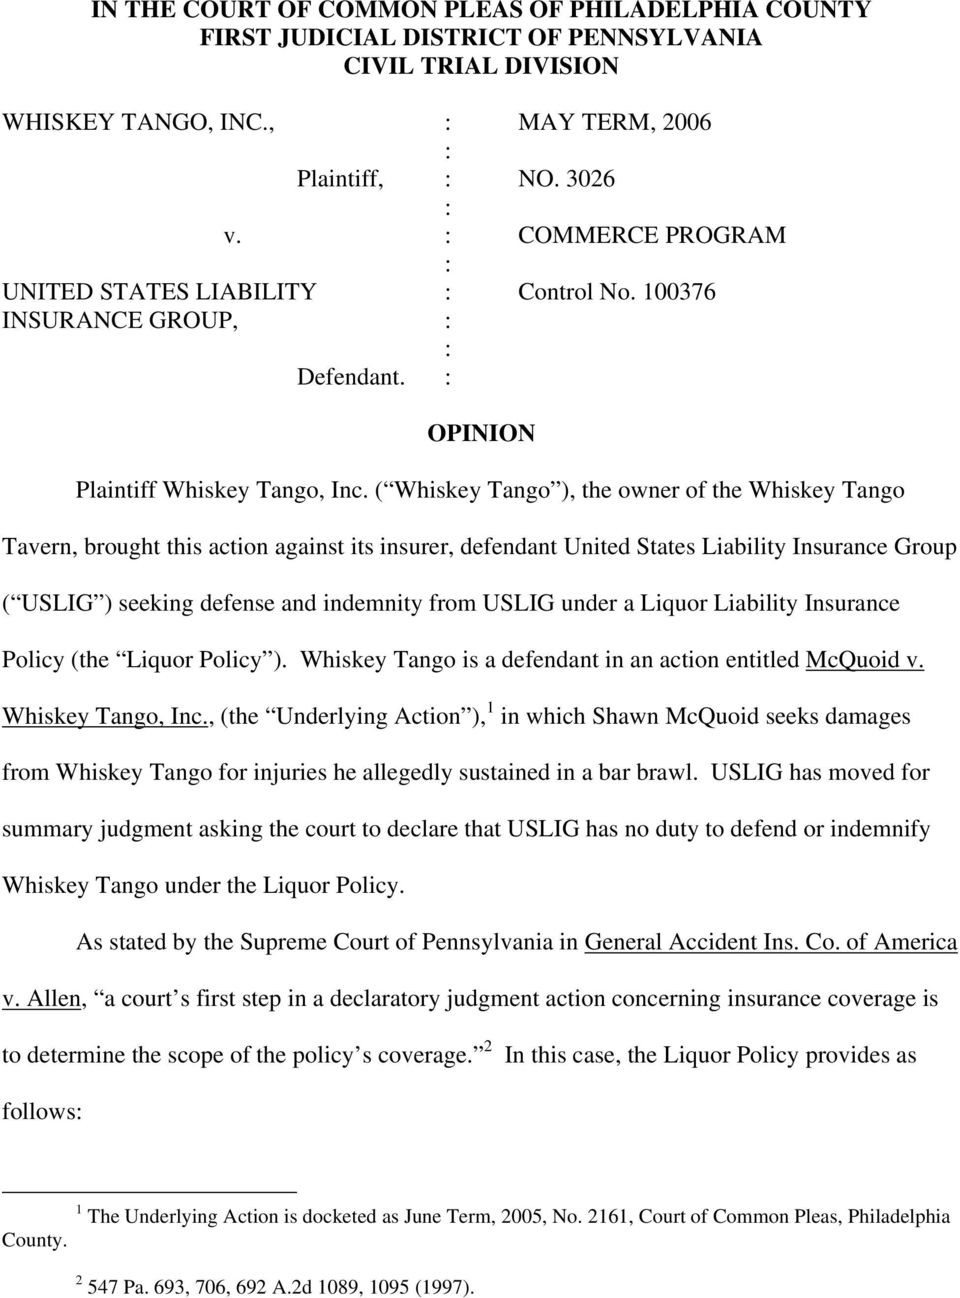 ( Whiskey Tango ), the owner of the Whiskey Tango Tavern, brought this action against its insurer, defendant United States Liability Insurance Group ( USLIG ) seeking defense and indemnity from USLIG